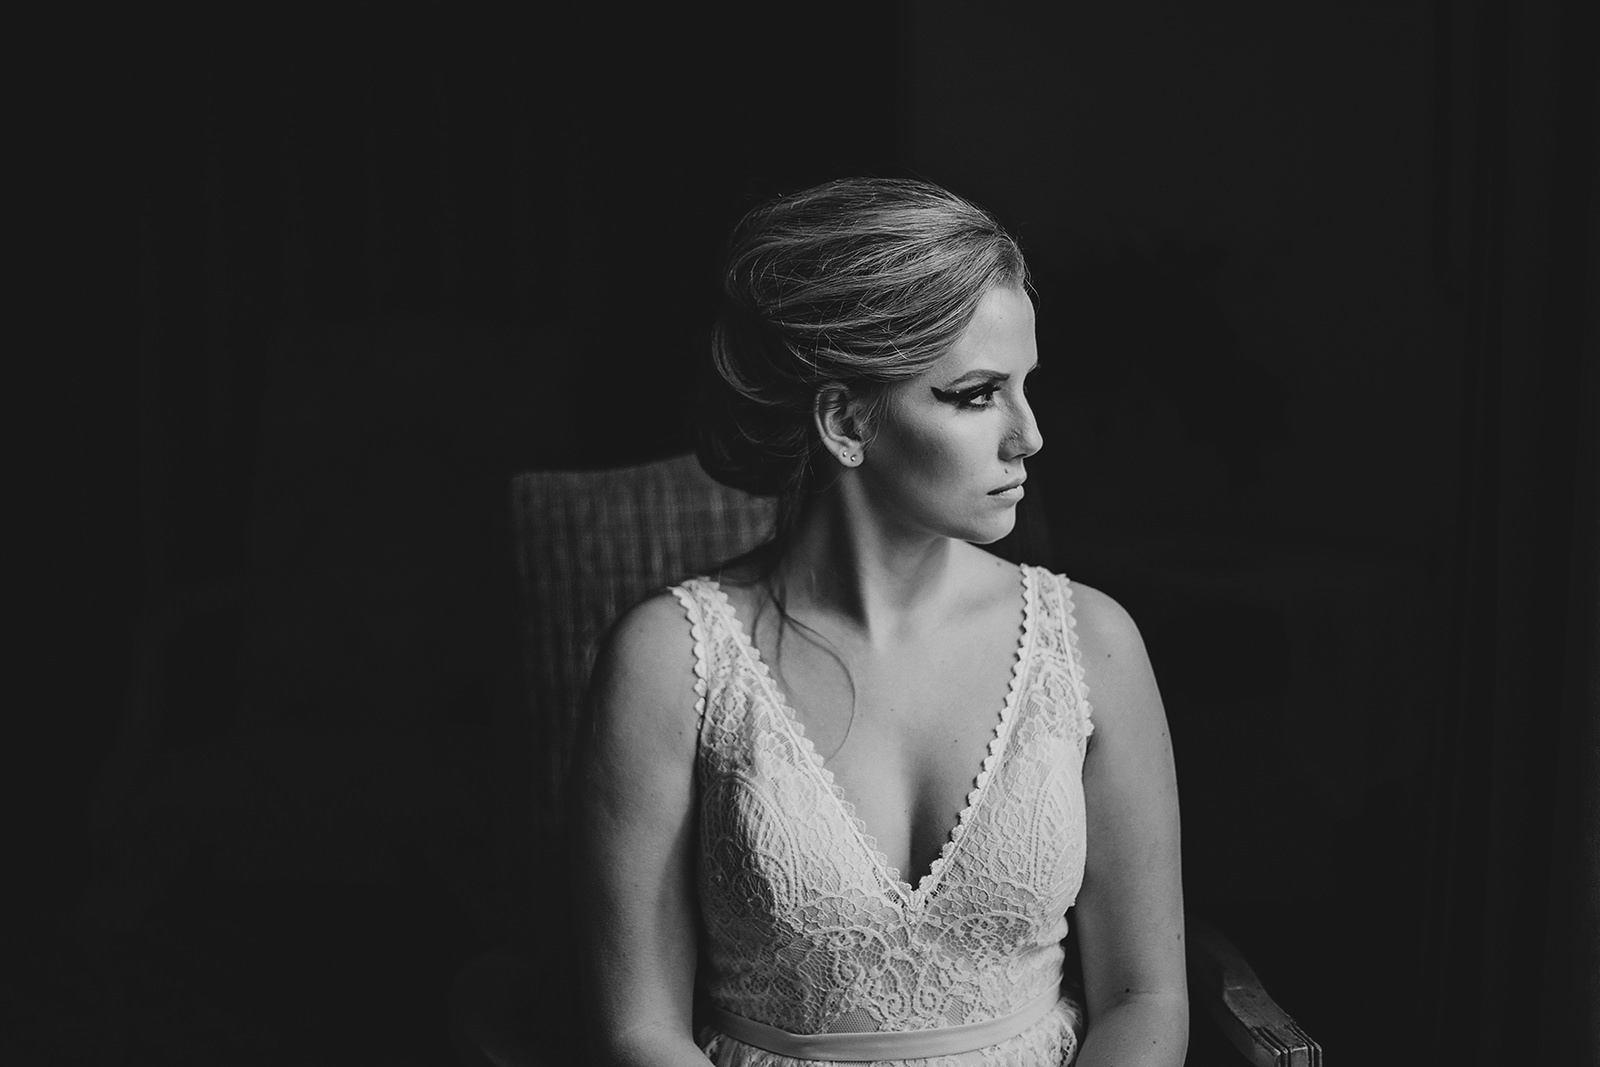 Bride looking out window with darkness around her